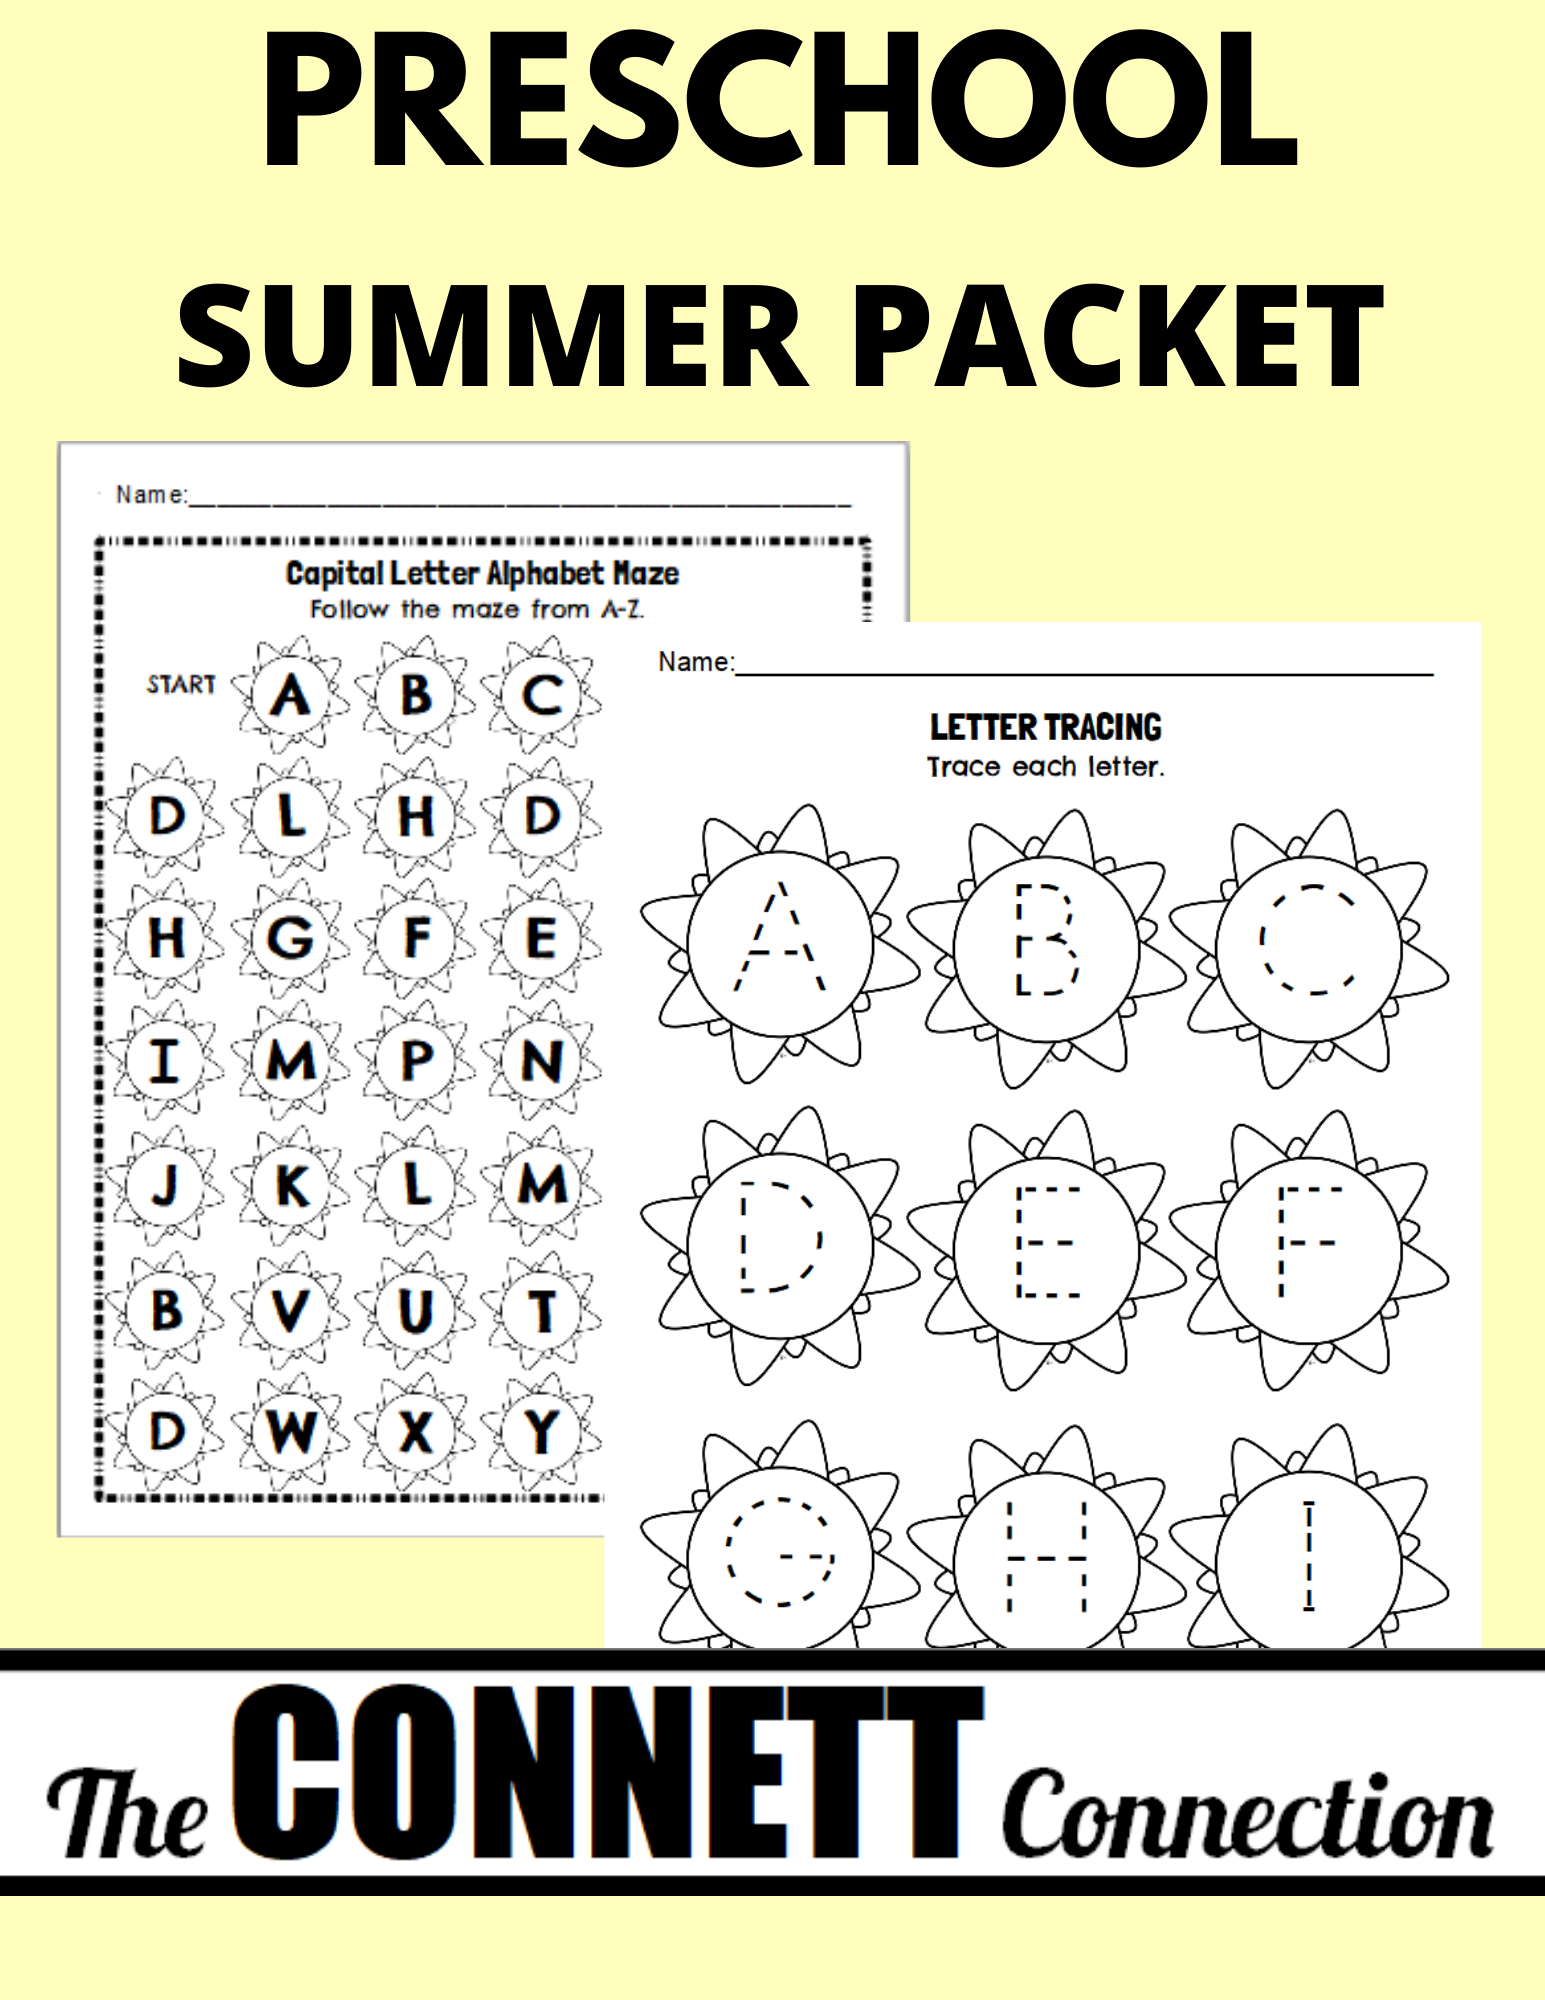 Pin On Teacher Made Resources Pk 12